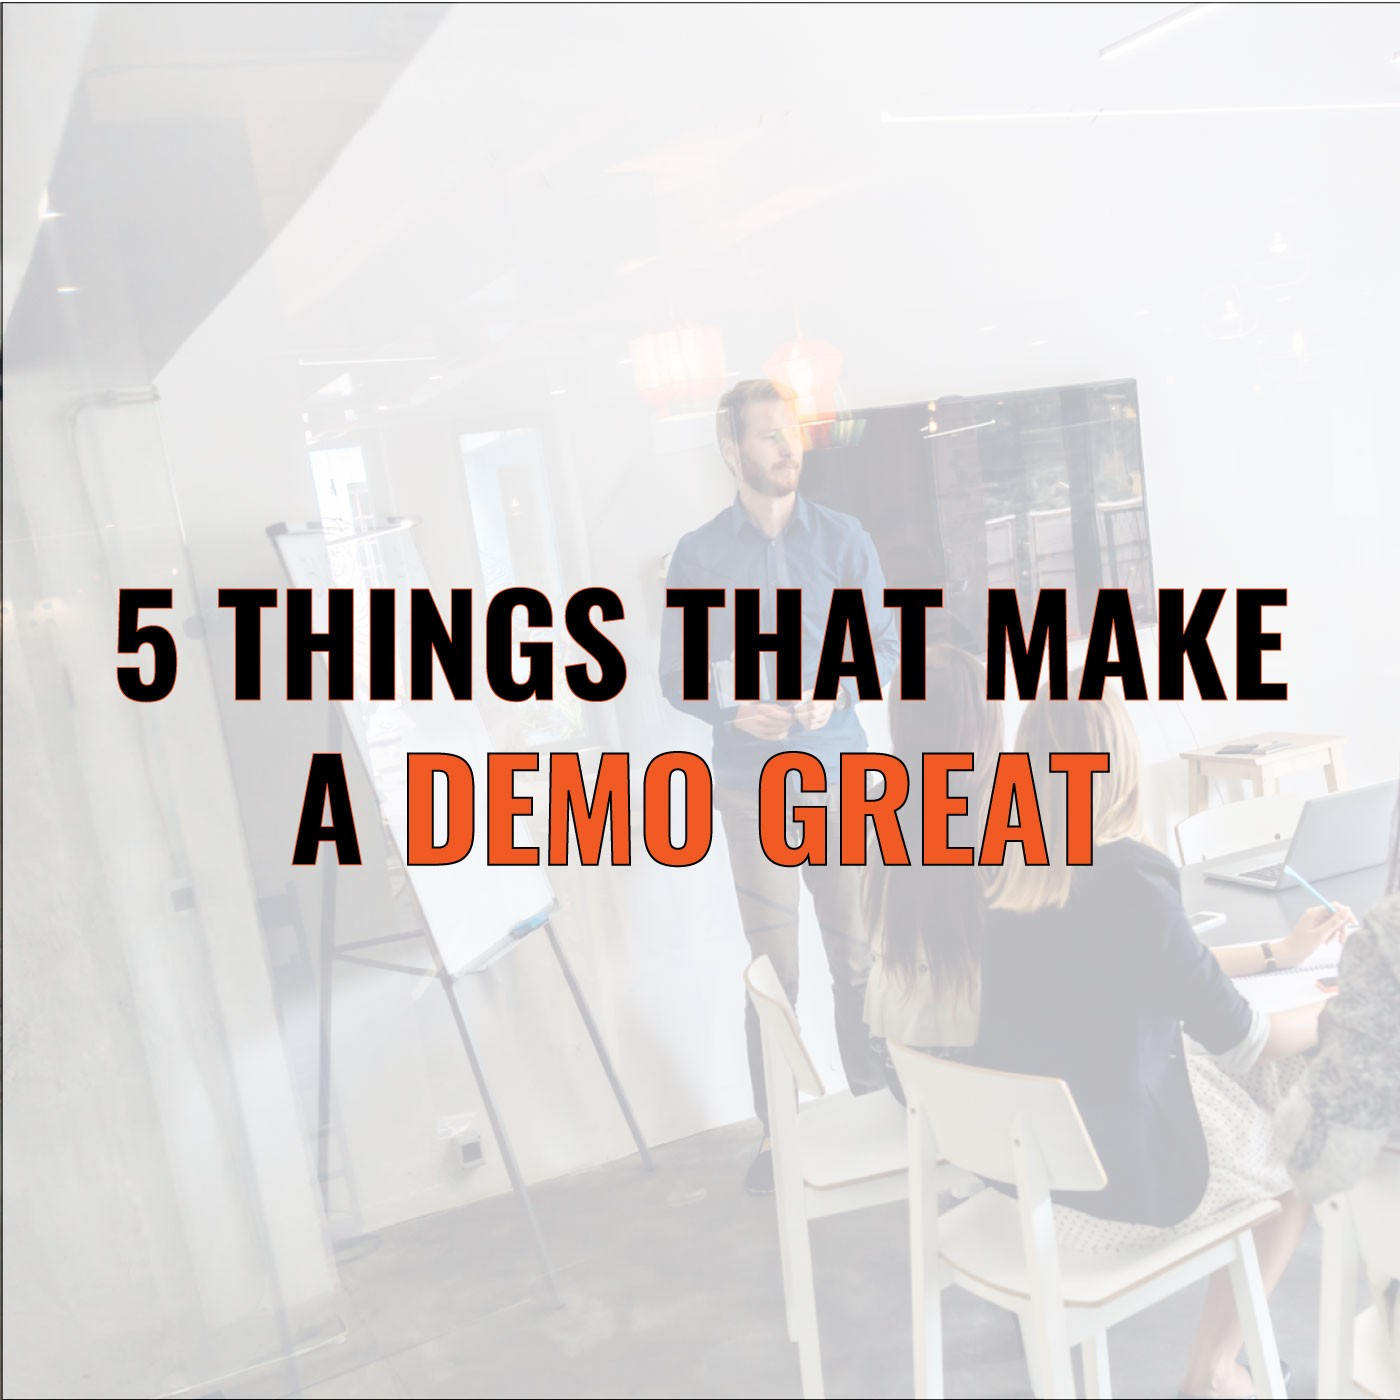 Brian Burns on 5 Things That Make a Demo Great